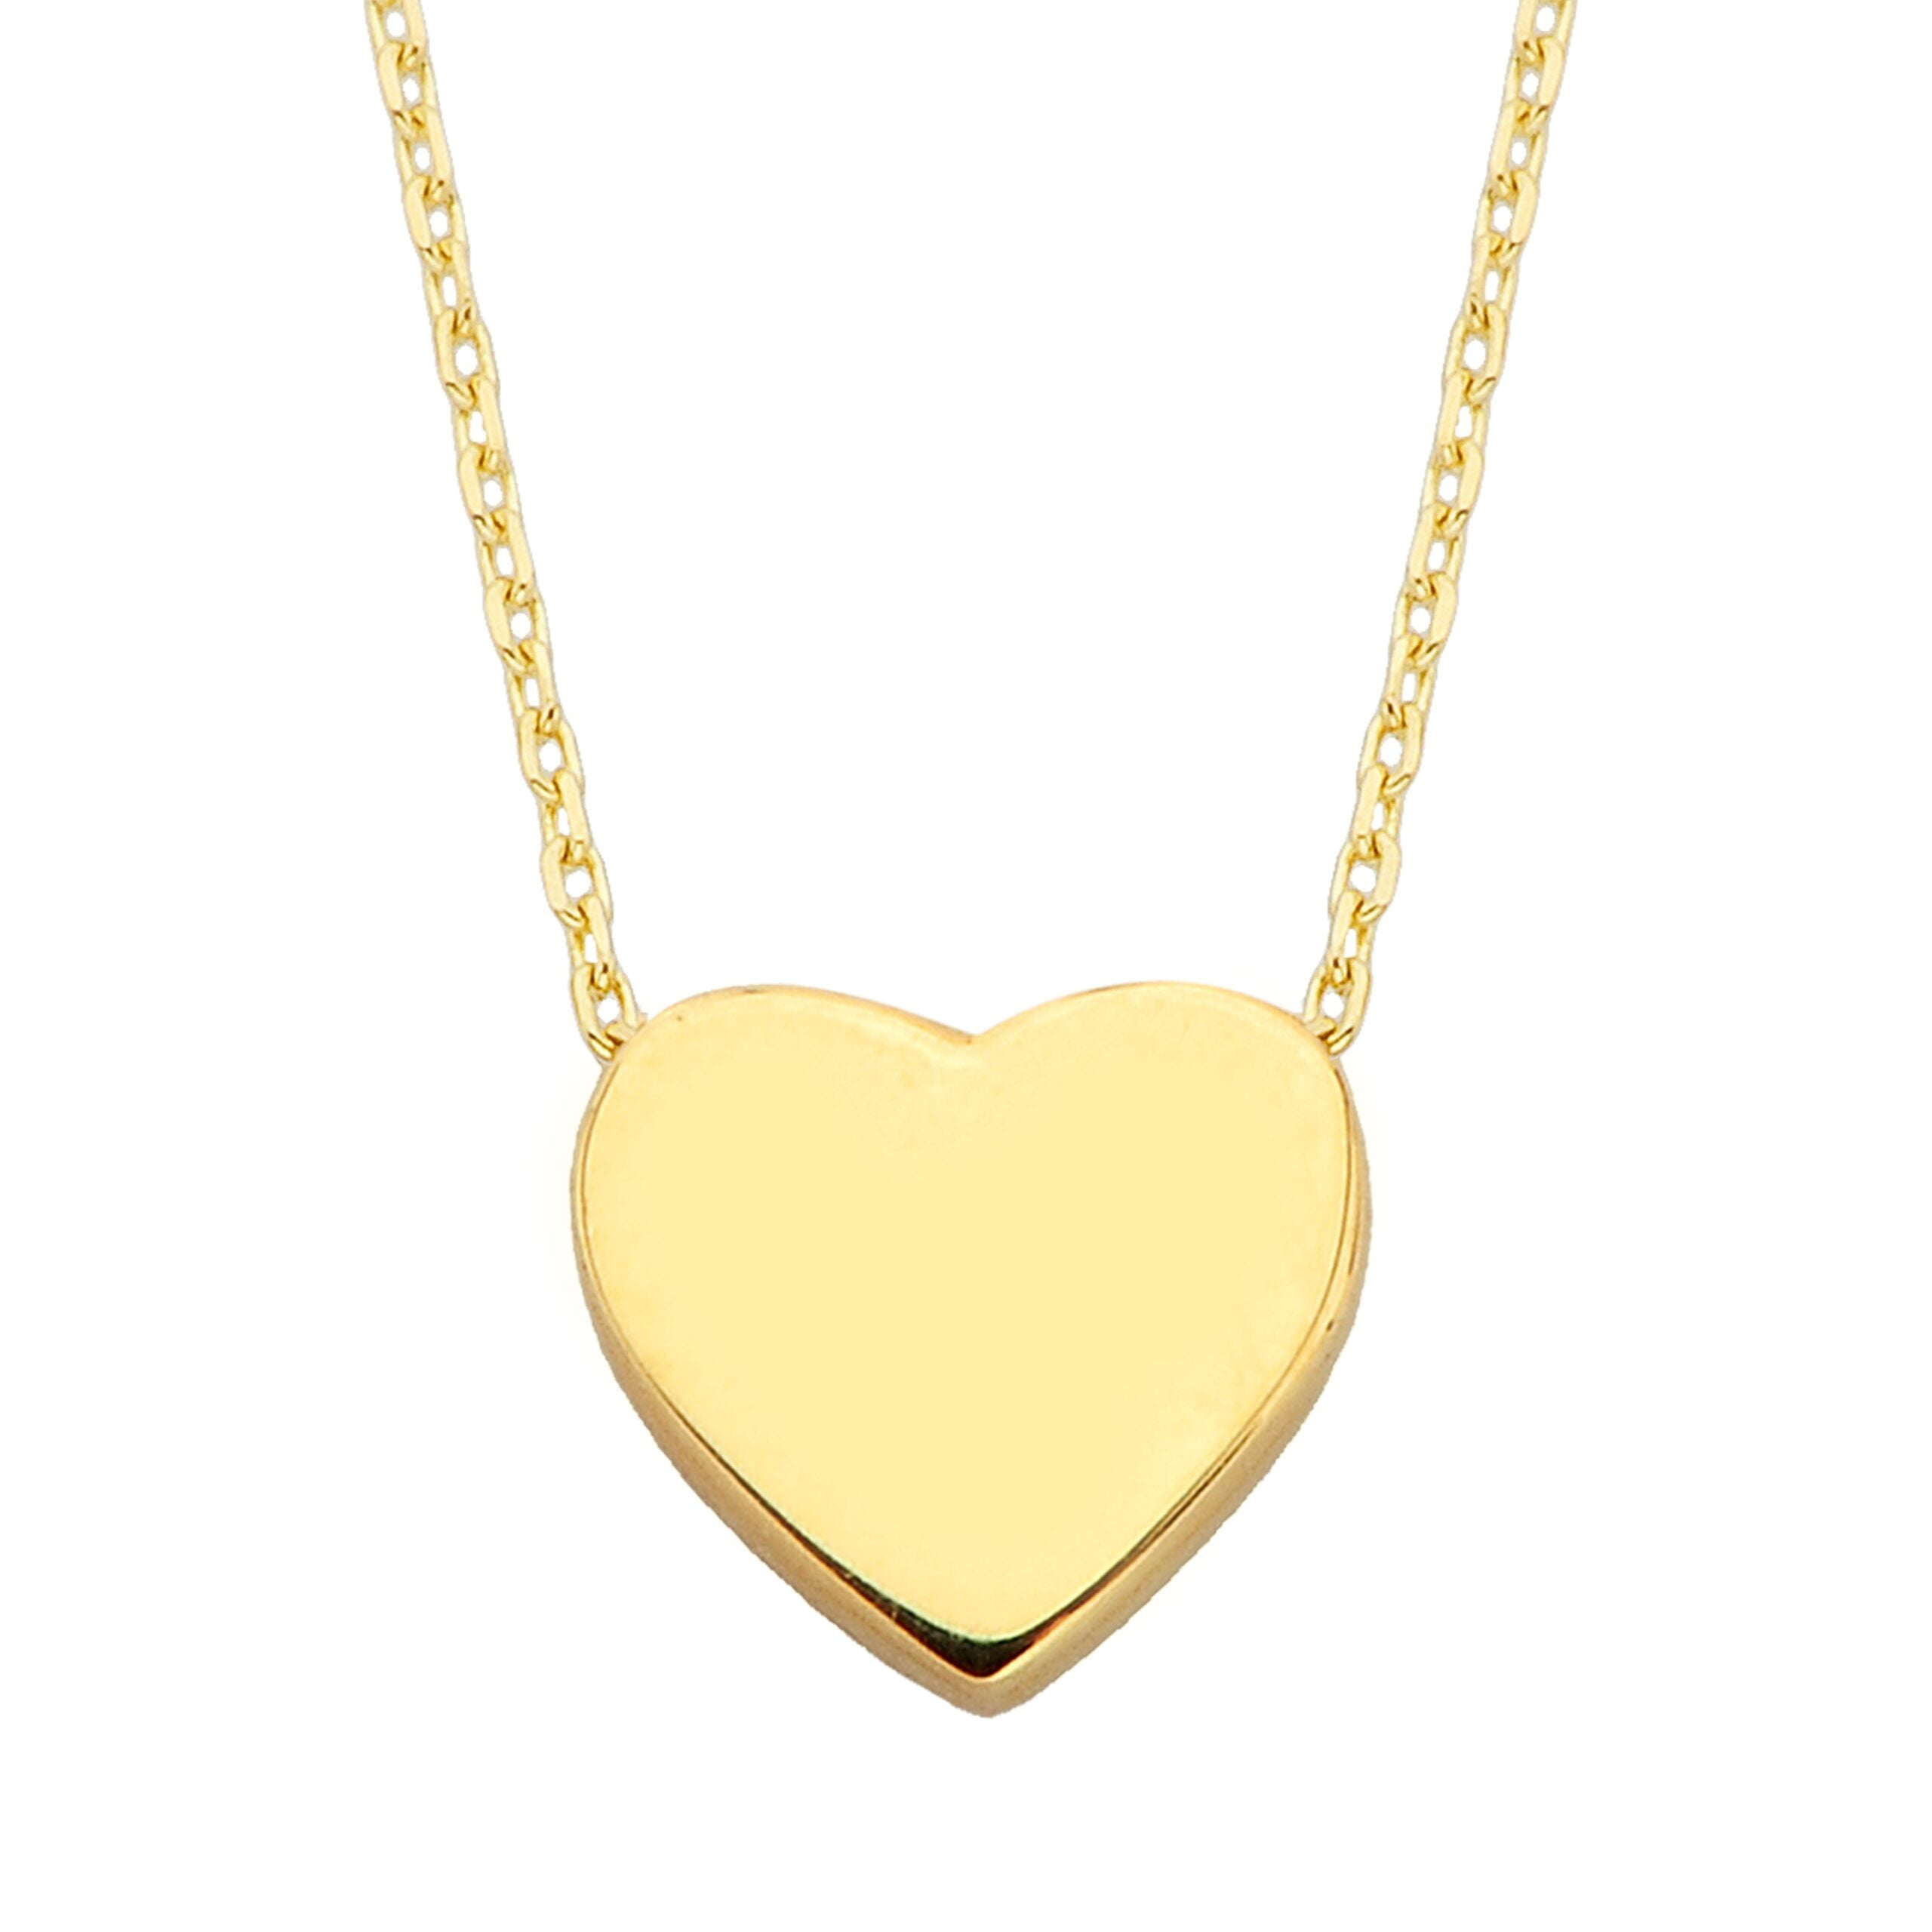 14k Real Solid Gold Dainty Tiny Heart Pendant Chain Necklace for Women and Girls Birthday Christmas Mother's Day Gift jewelry Love